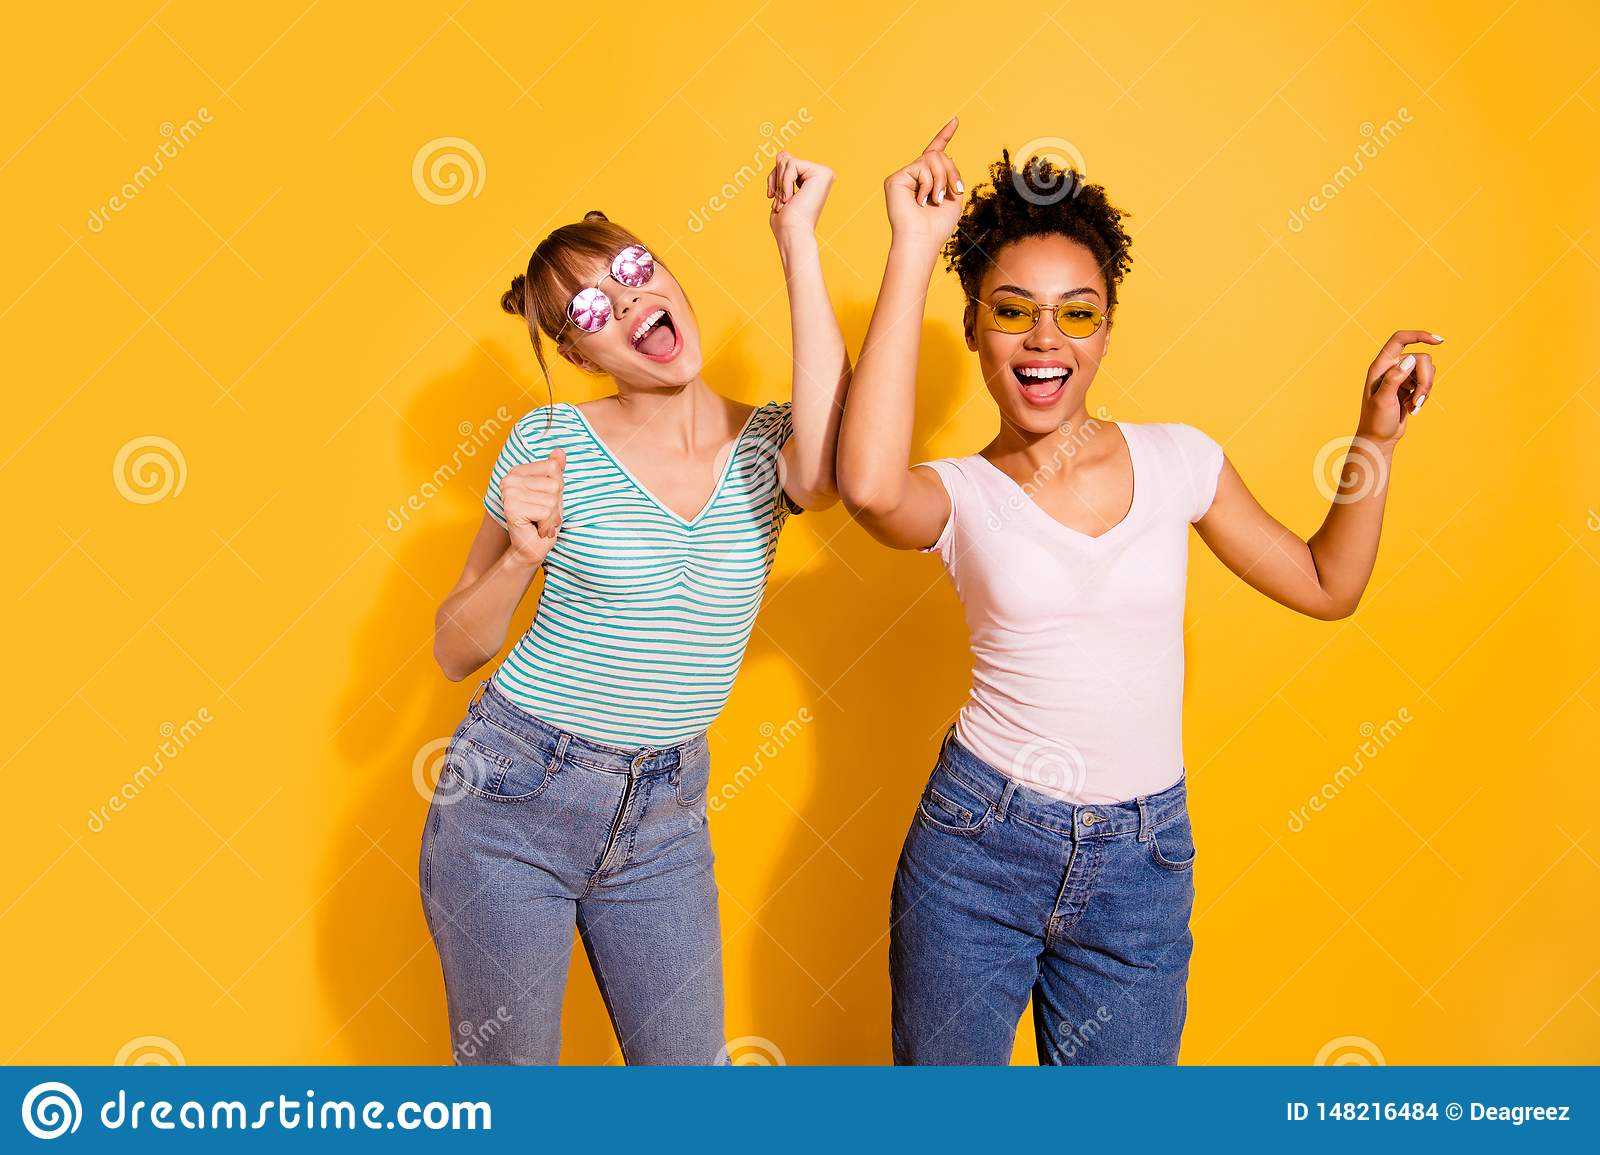 Close up photo beautiful funny she her lady hands arms raised up modern motion different nationalities excited wear sun